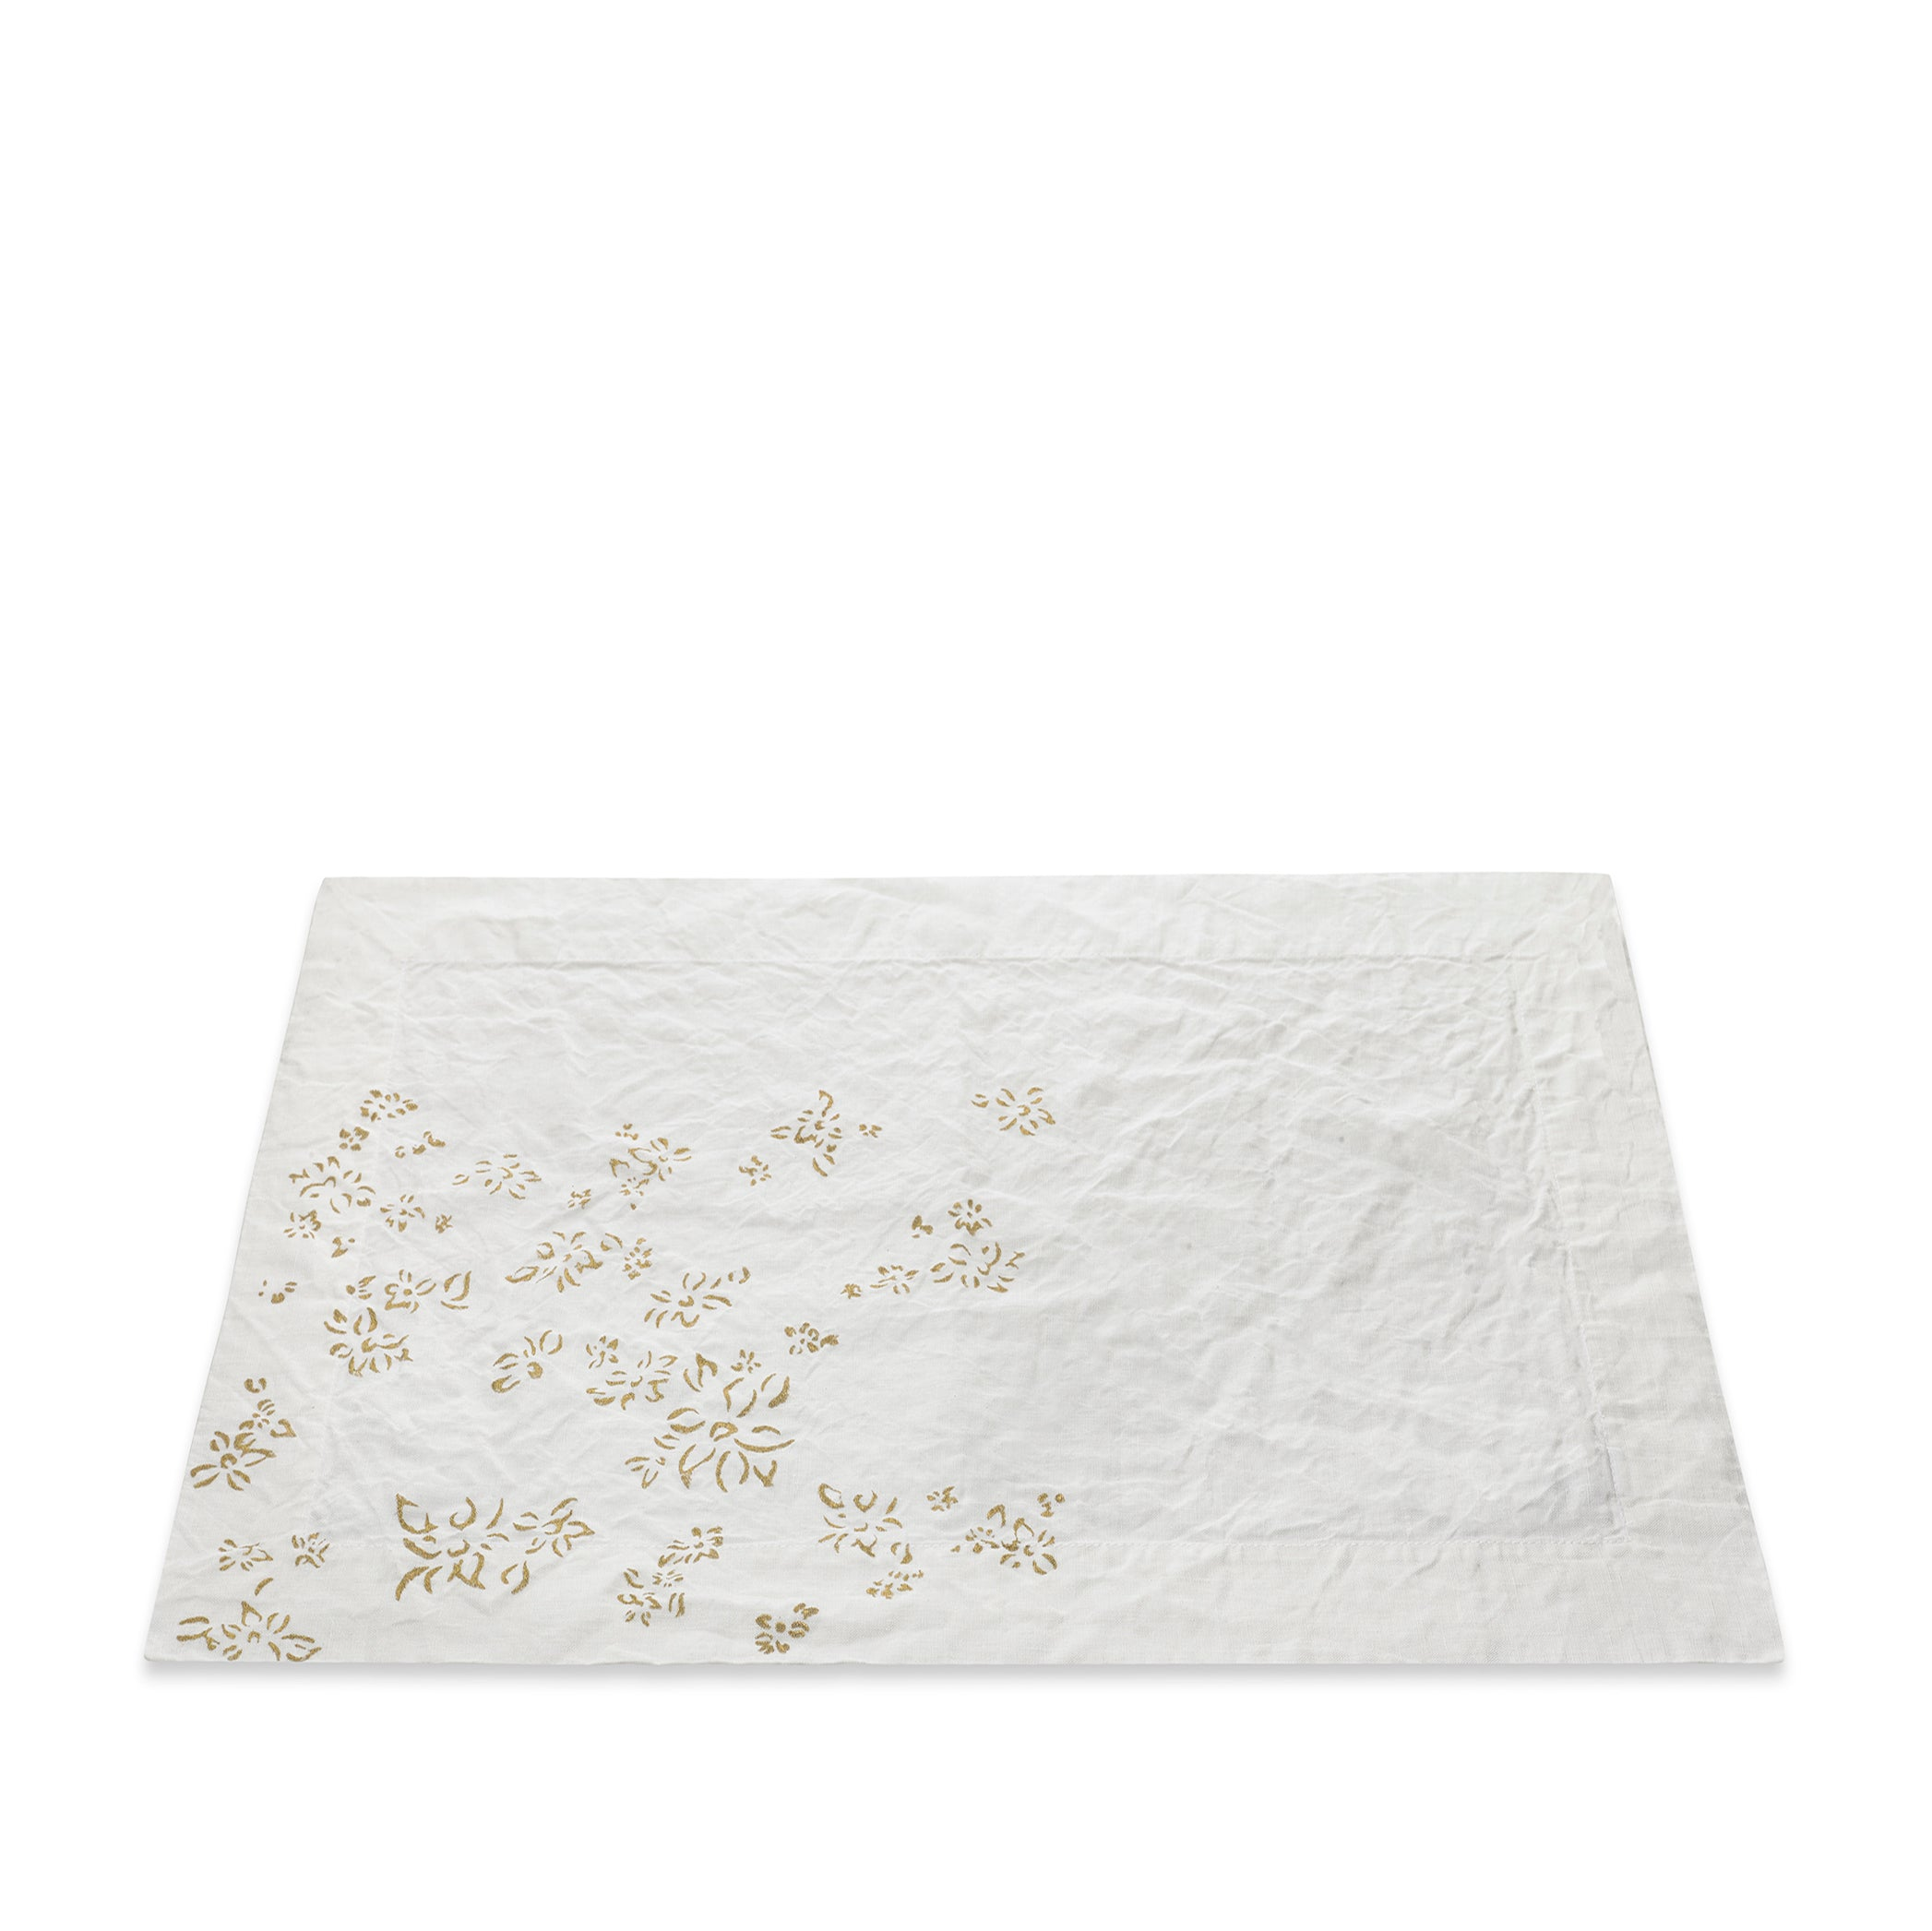 Bernadette's Hand Stamped Falling Flower Linen Placemat in Gold